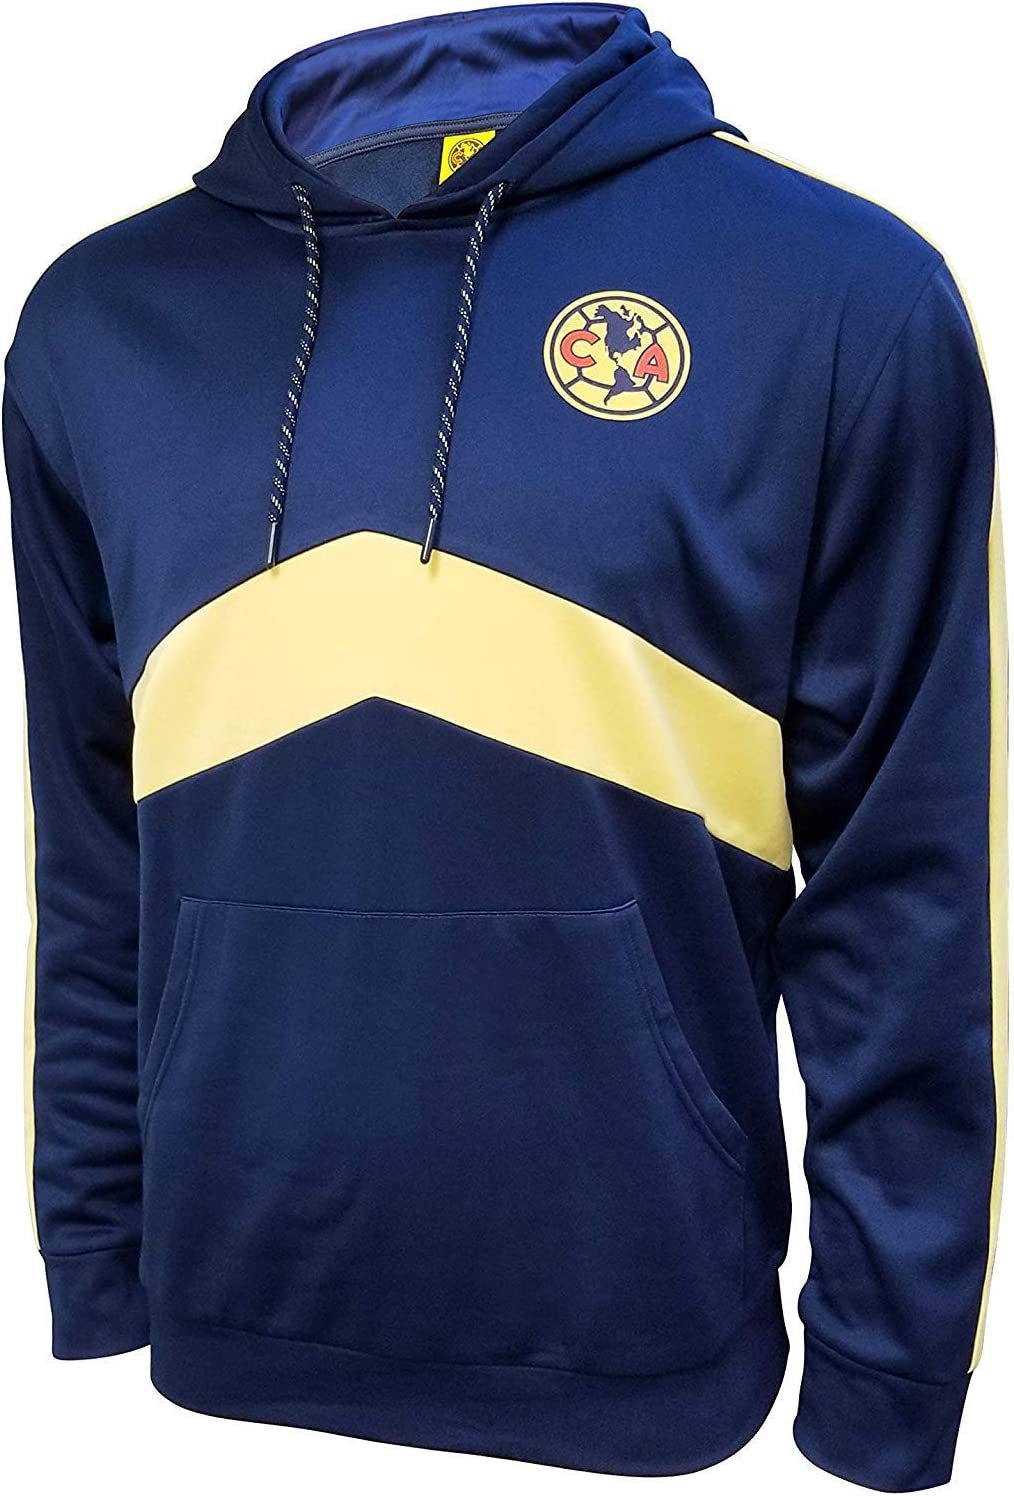 Icon Sports Men Club America Officially Licensed Soccer T-Shirt Cotton Tee 04